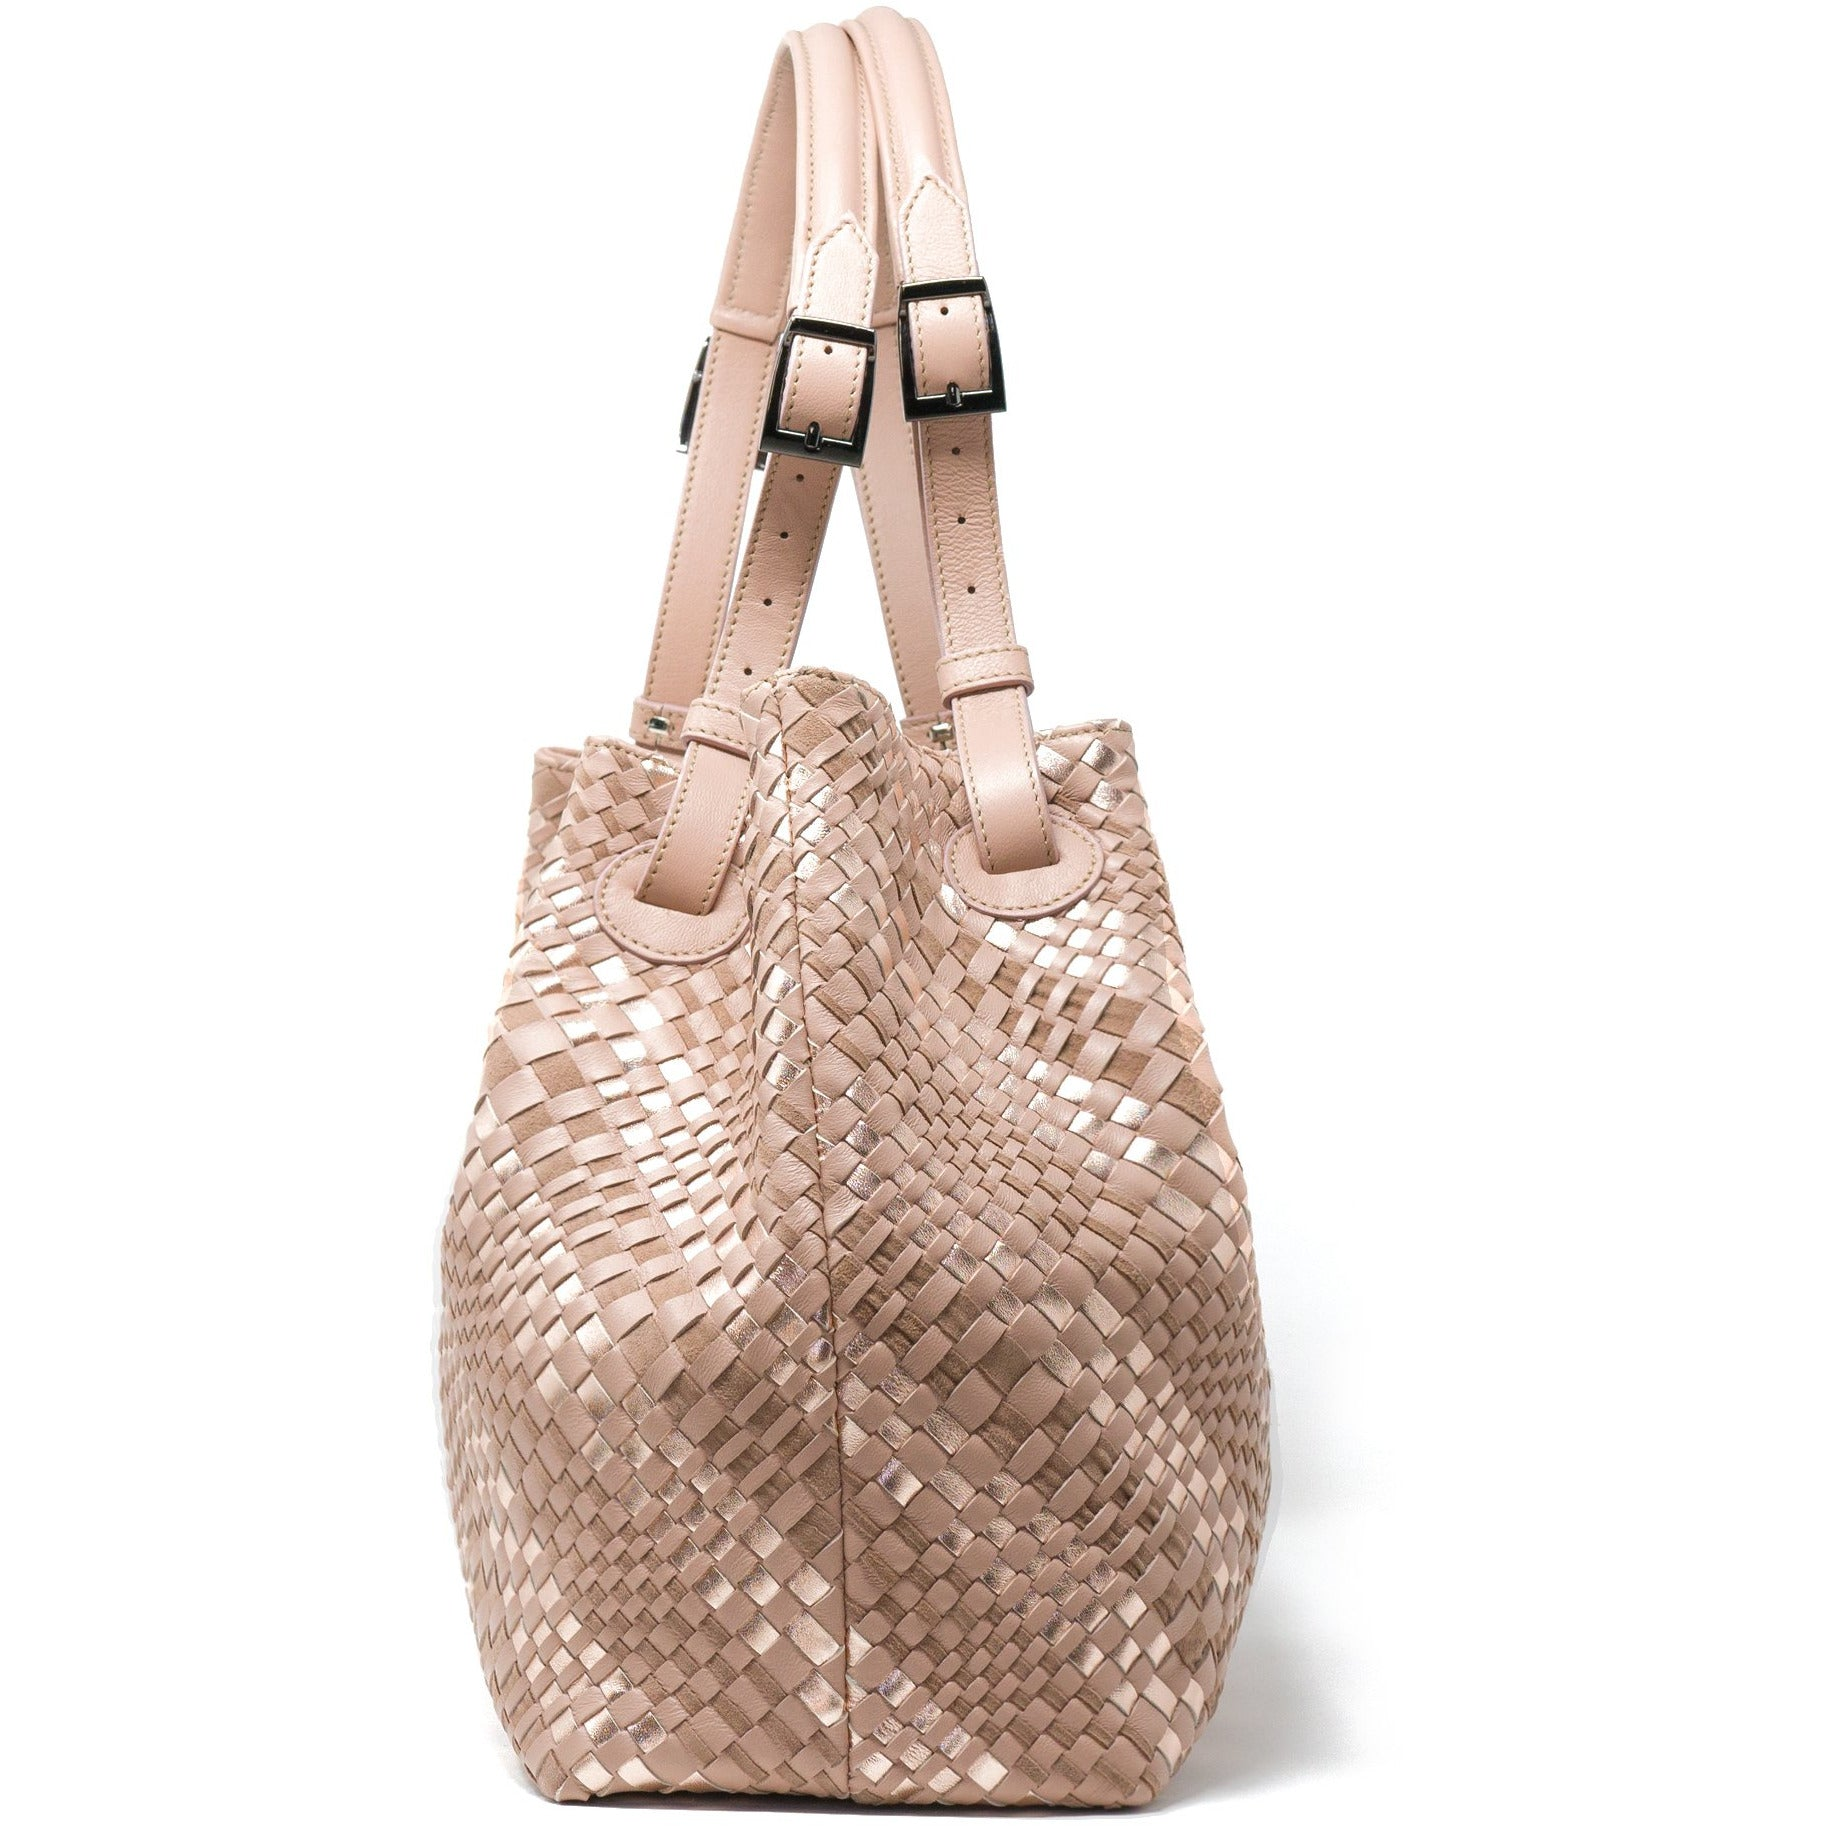 Alessia M Women Leather Intrecciato Shoulder Bag in Salmon - Jennifer Tattanelli